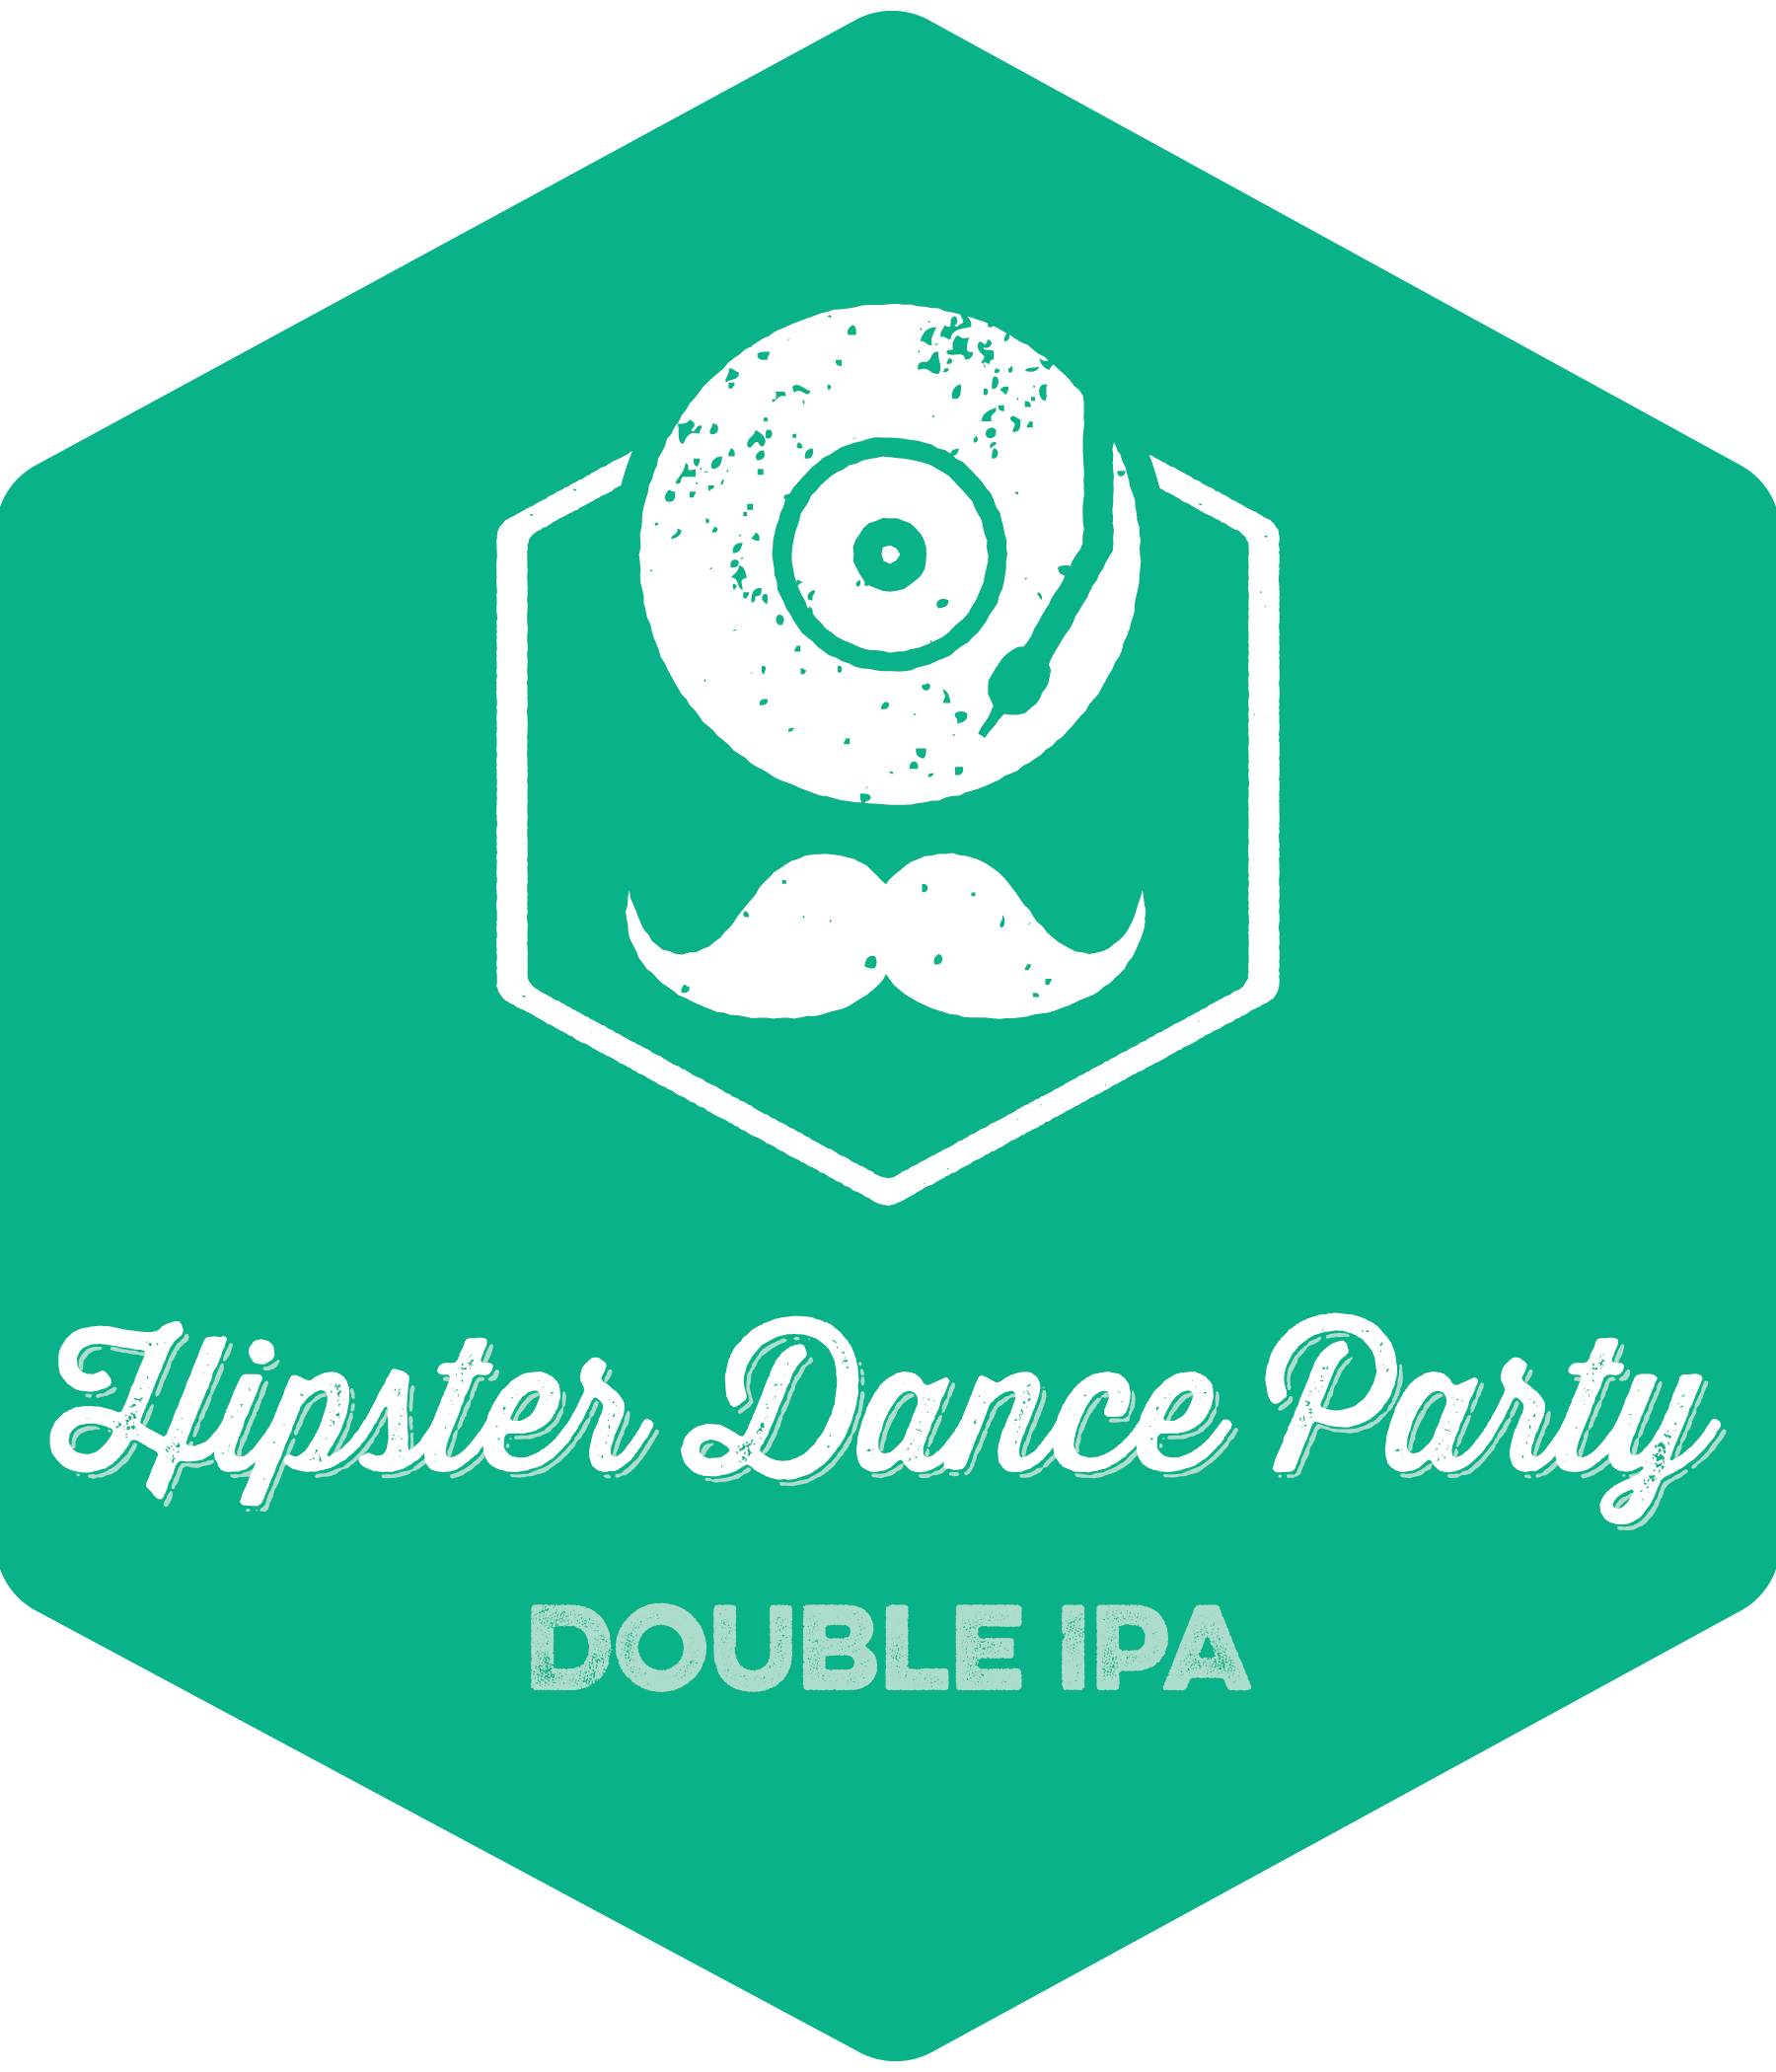 Hipster+dance+party